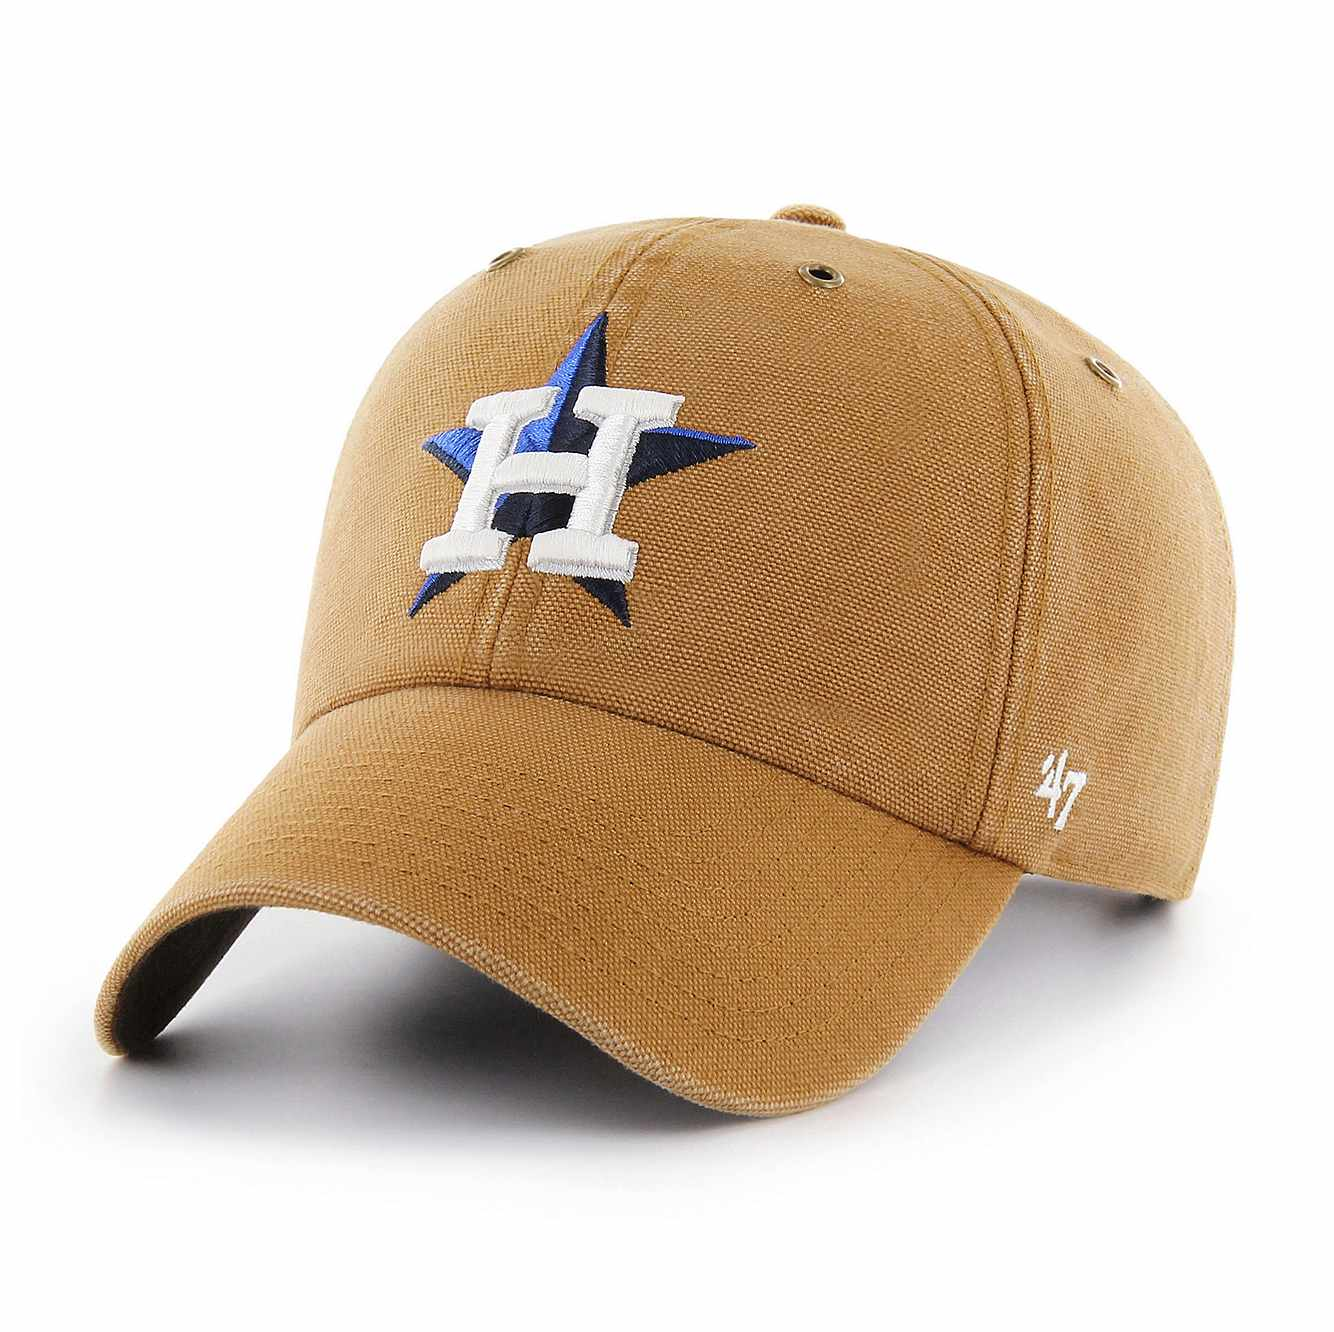 Picture of Houston Astros Carhartt x '47 Clean Up in Carhartt Brown